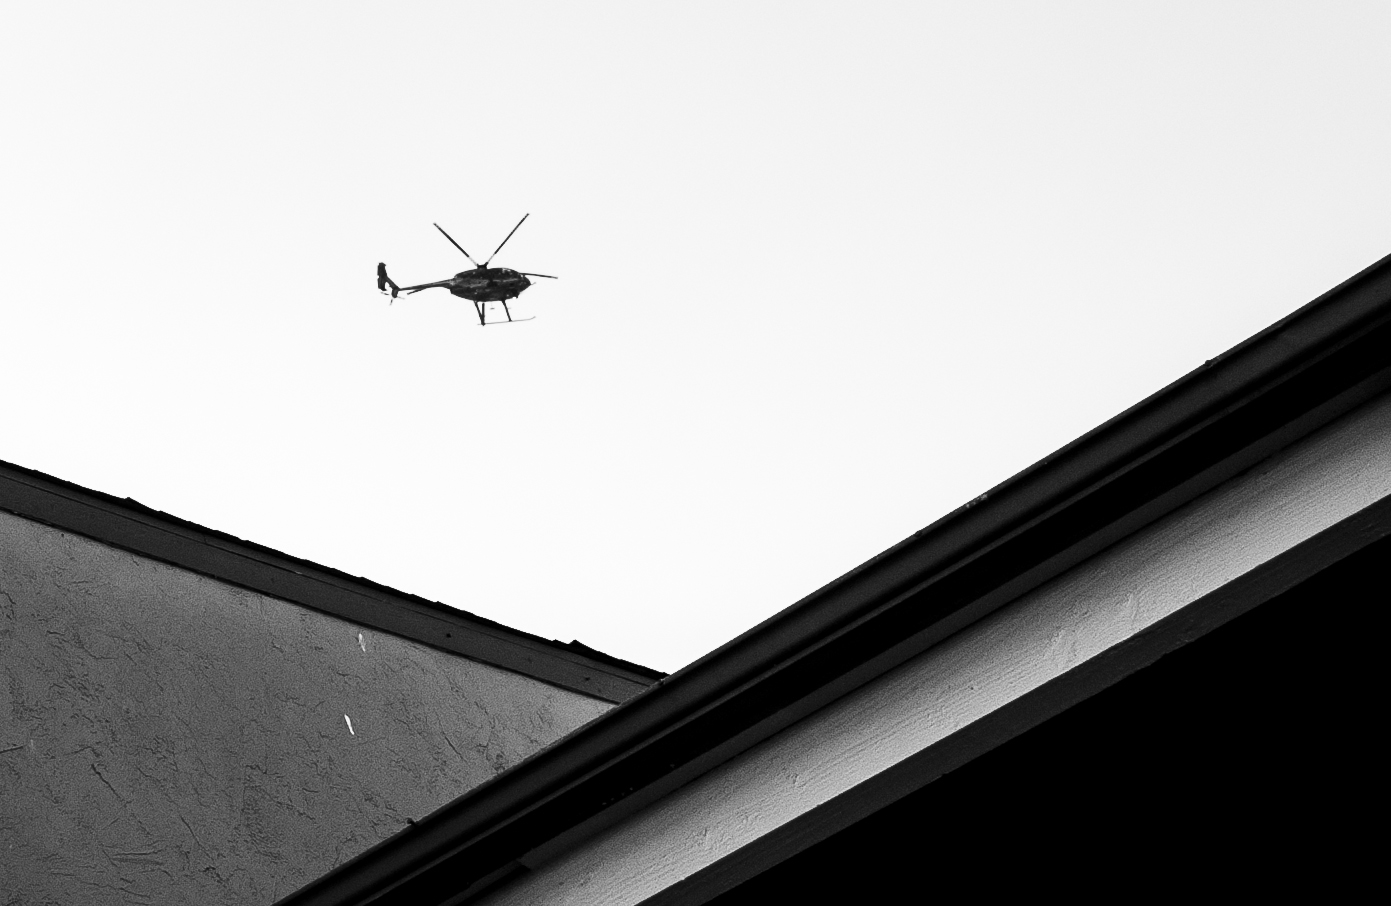 A police helicopter circles over an apartment complex, searching for suspects after a drug related shooting.